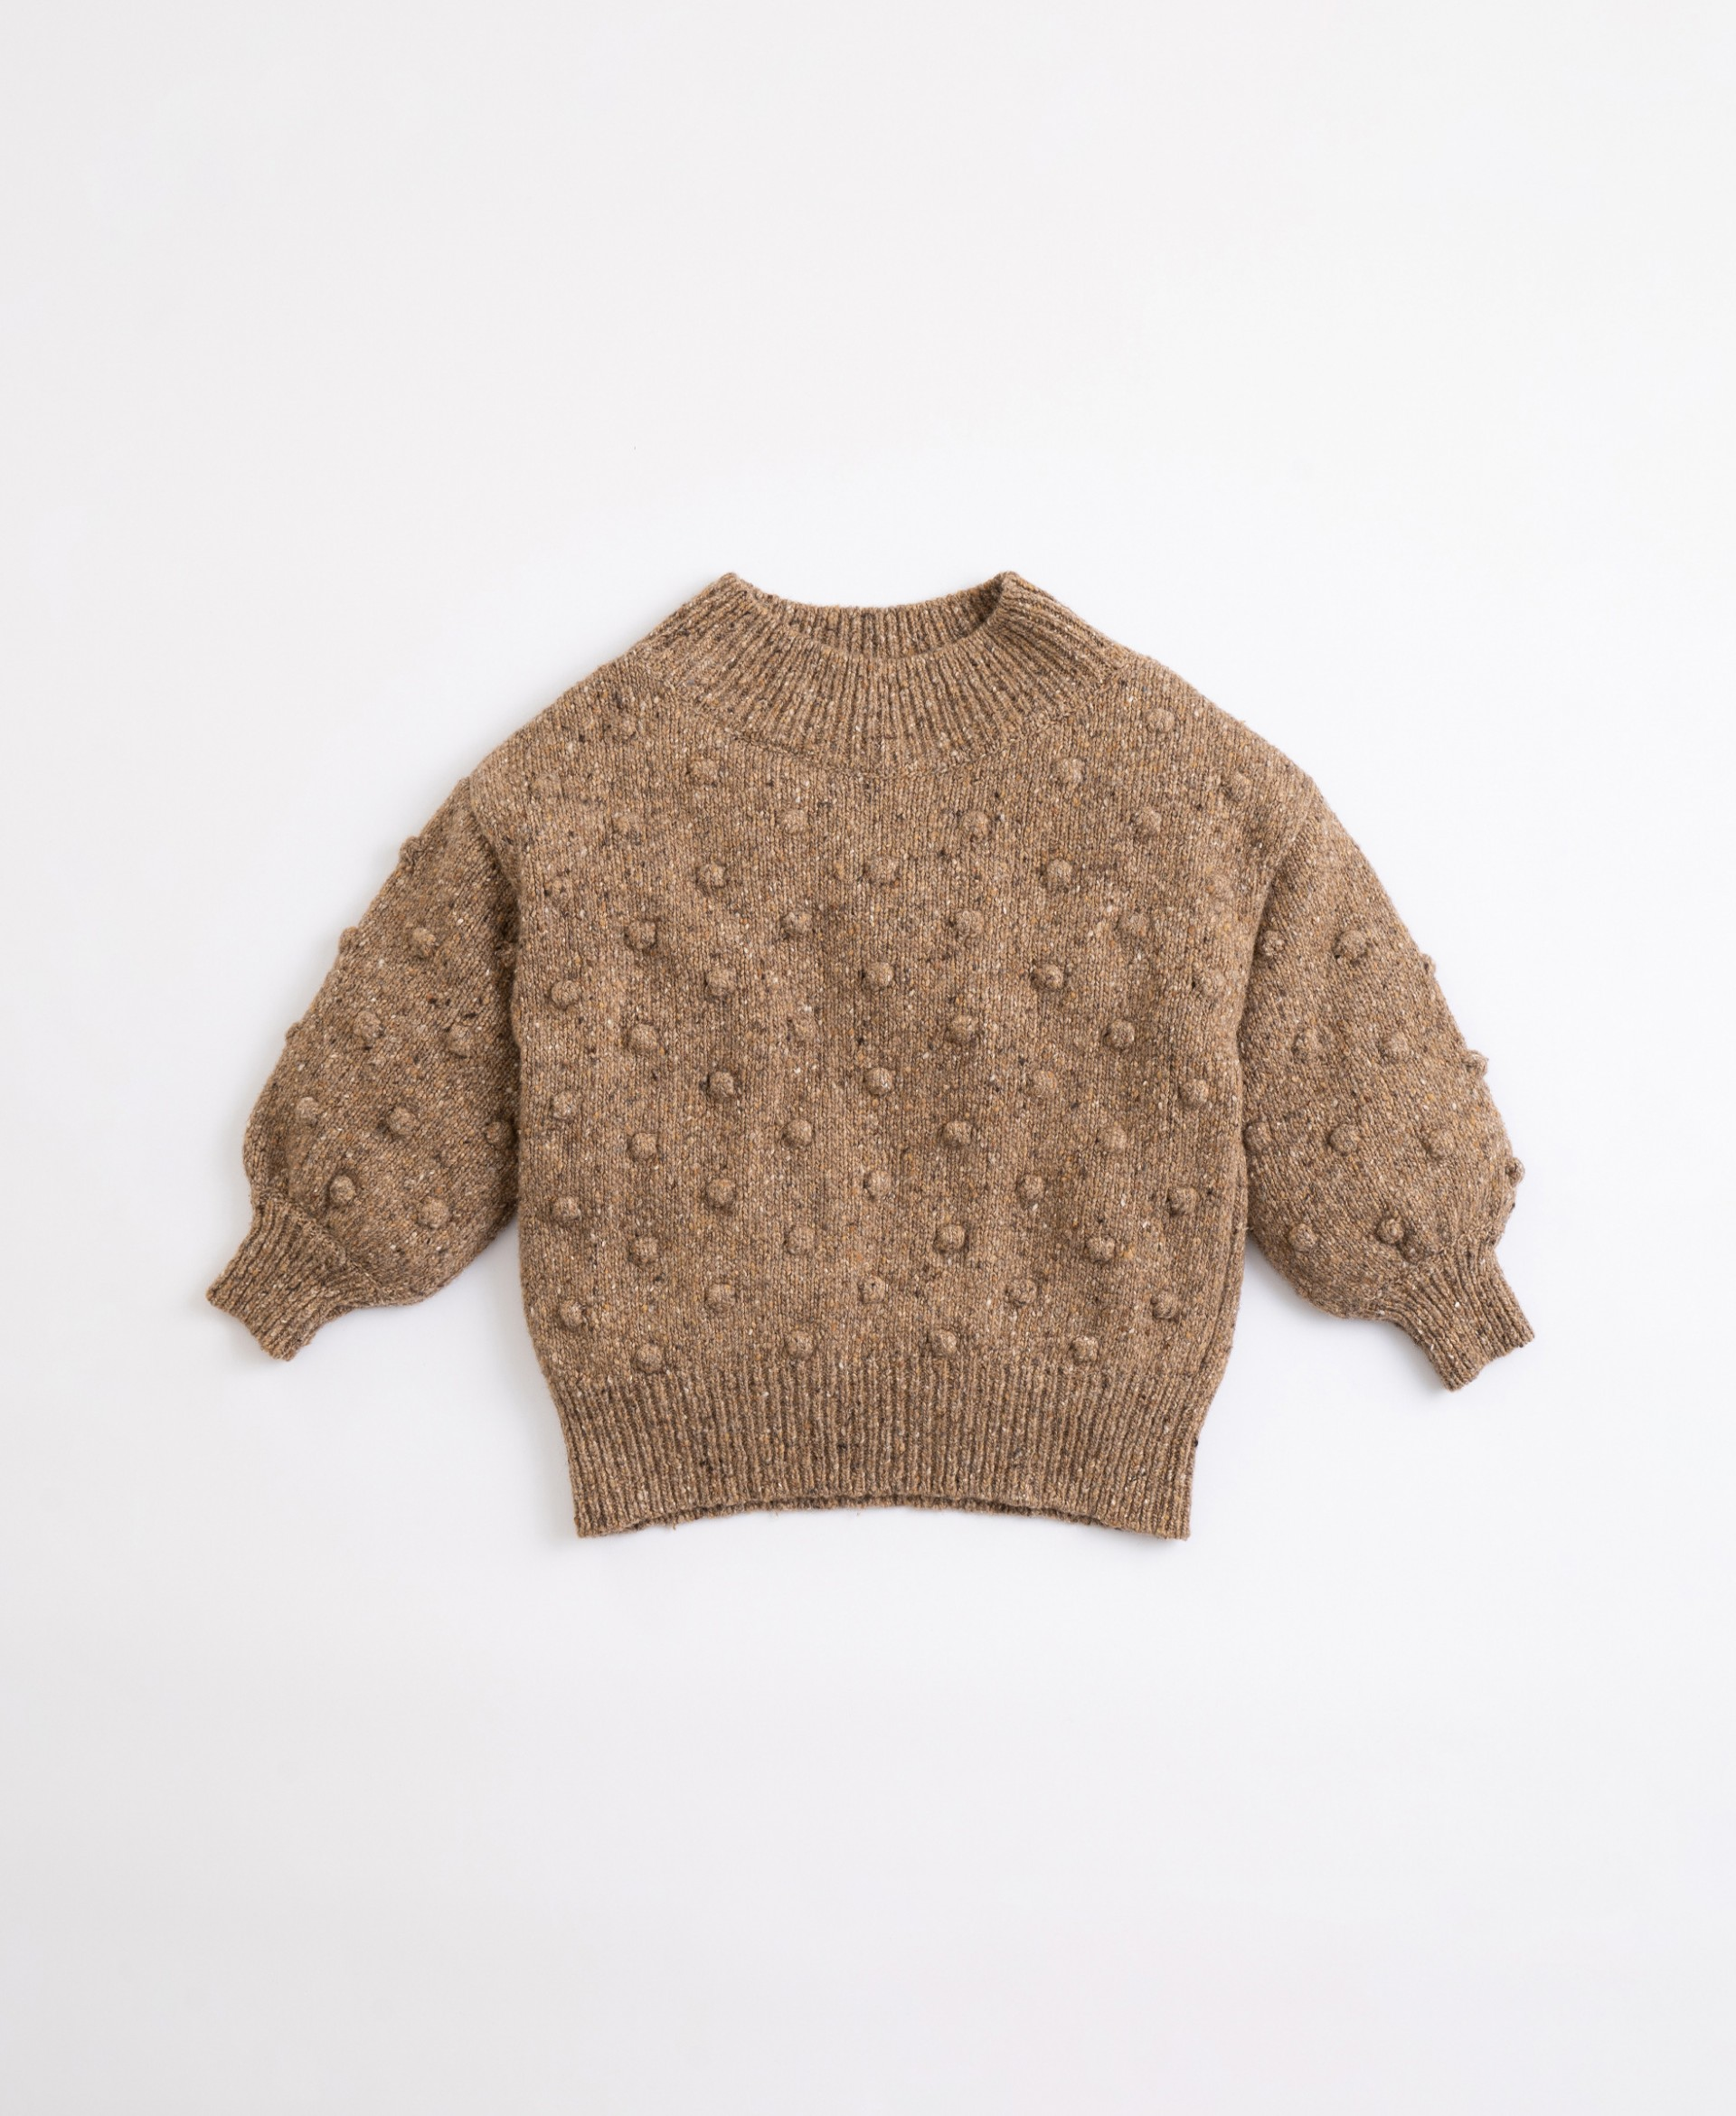 Knitted jersey with recycled fibres | Illustration